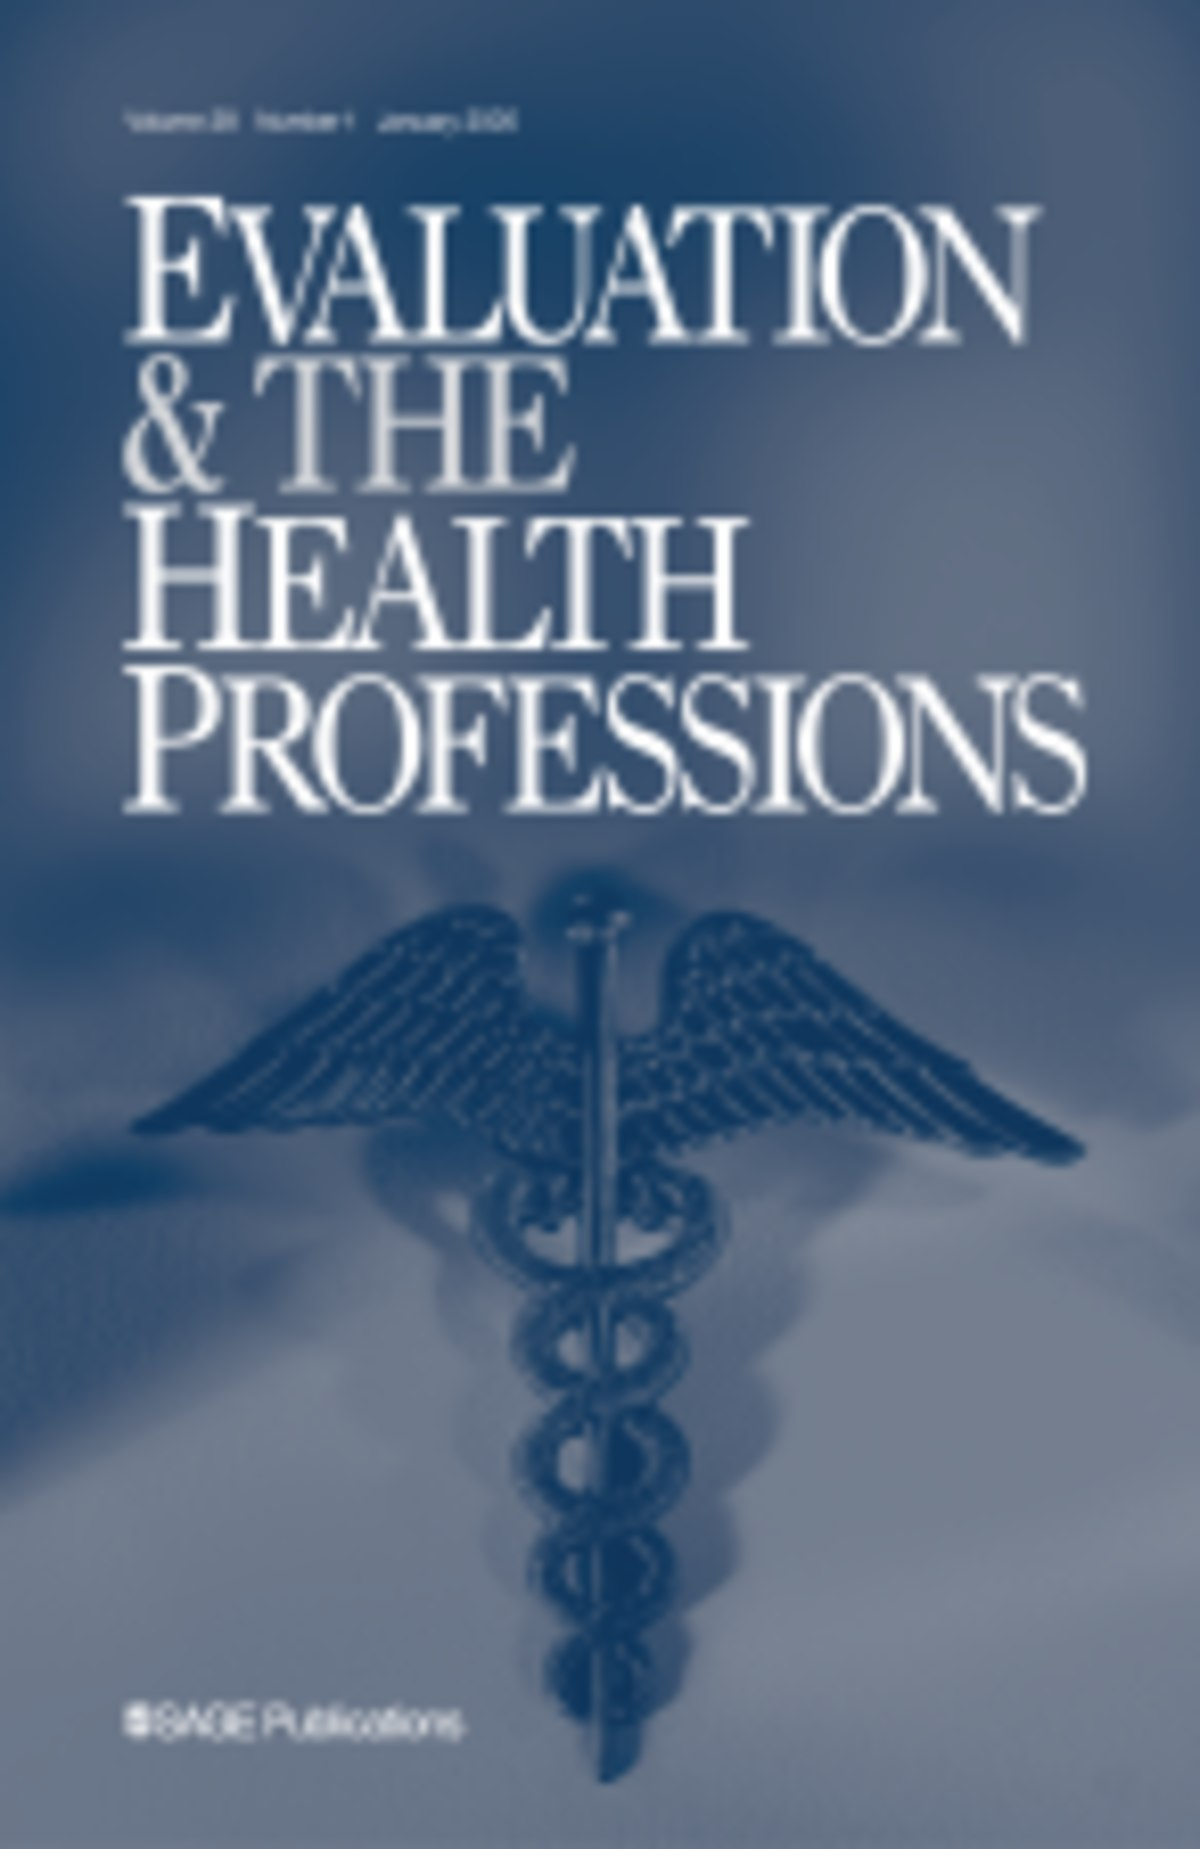 evaluation  u0026 the health professions